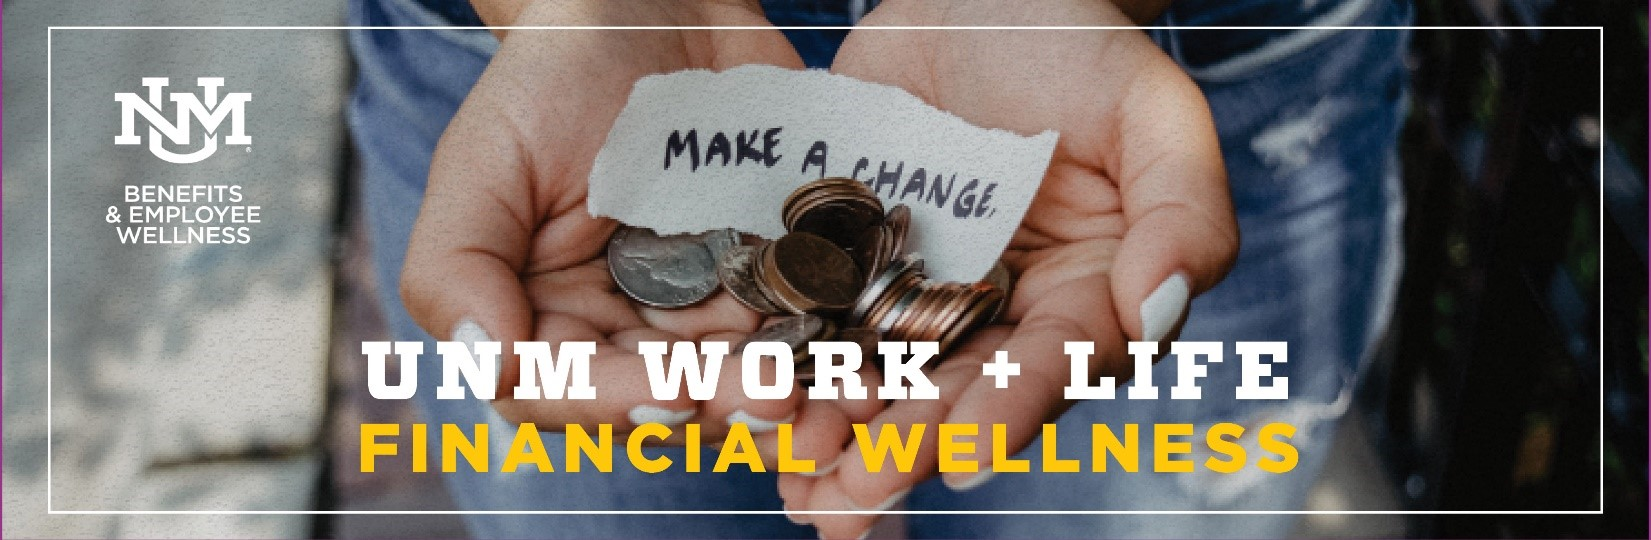 UNM Work & Life: Financial Wellness Program